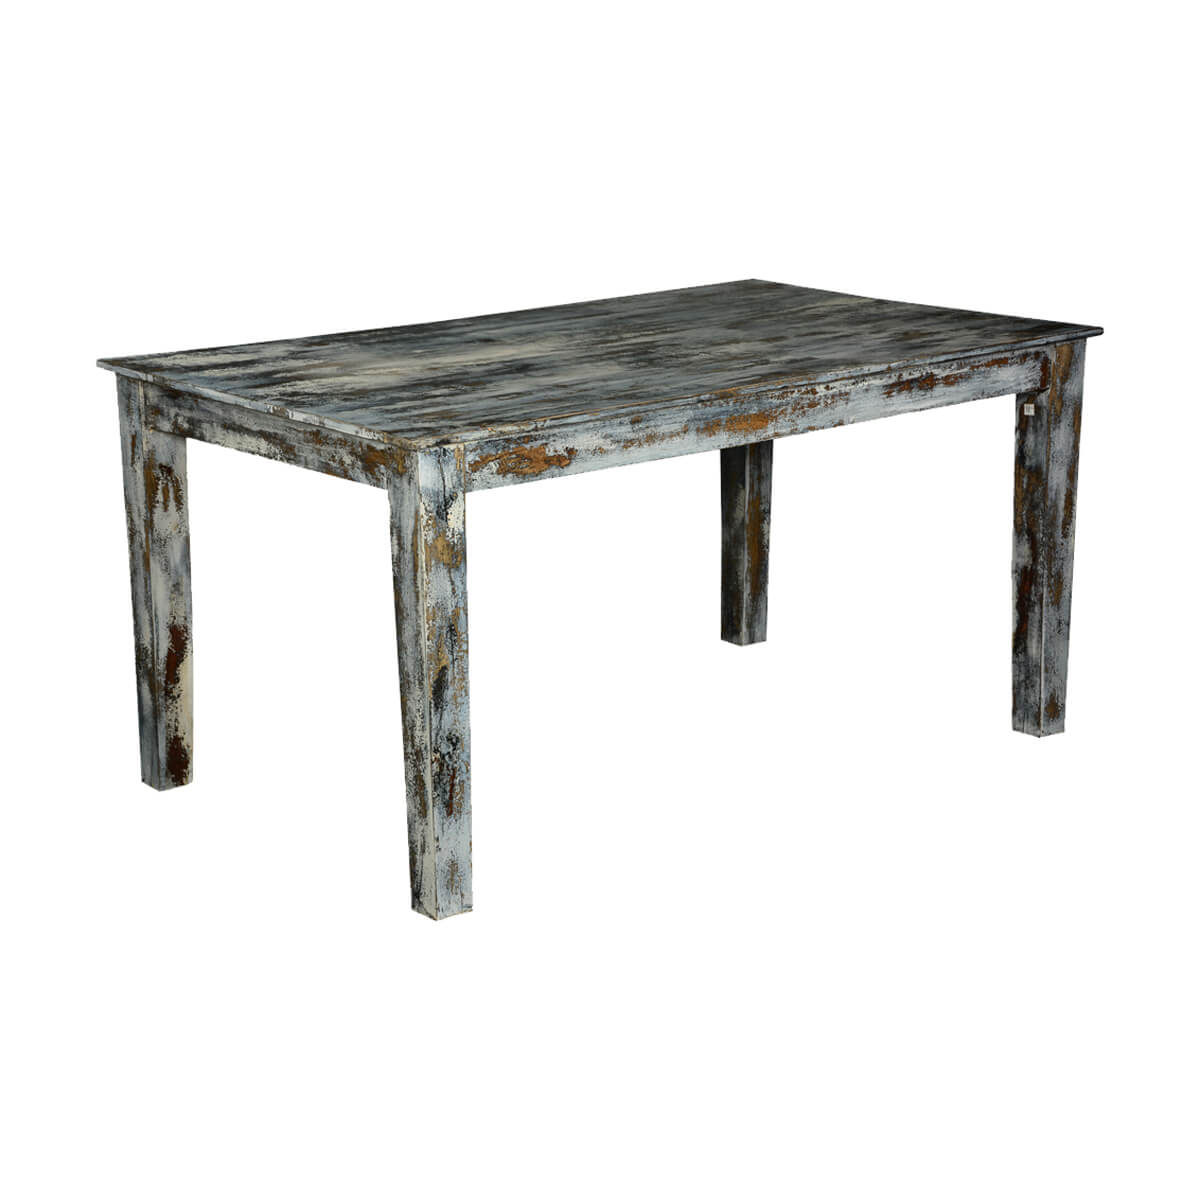 Grey speckled distressed wood kitchen dining table for Dinner table wood